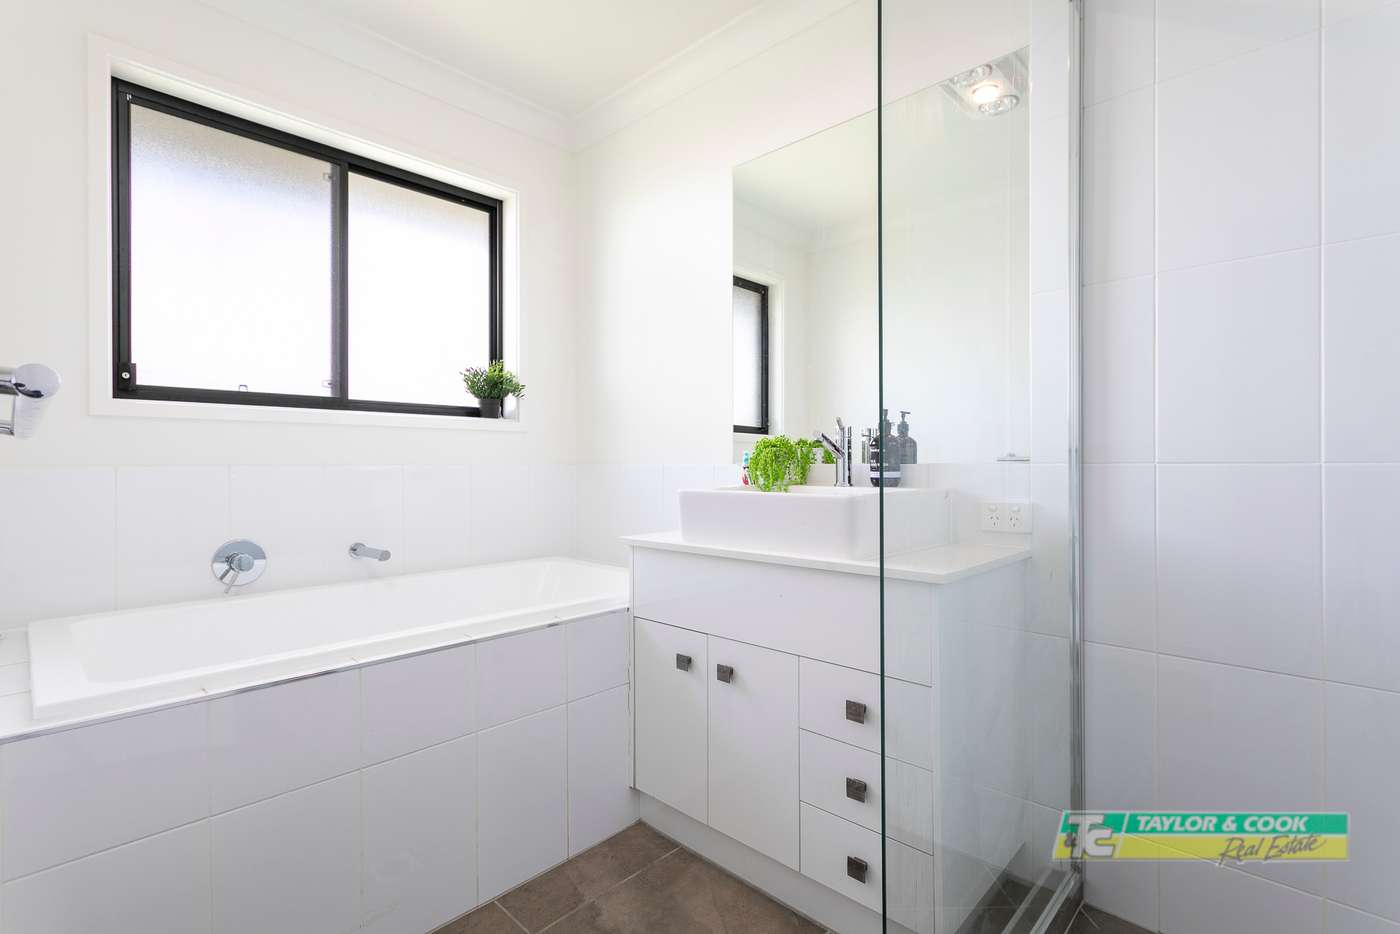 Seventh view of Homely house listing, 6 Massey Street, Yarrabilba QLD 4207